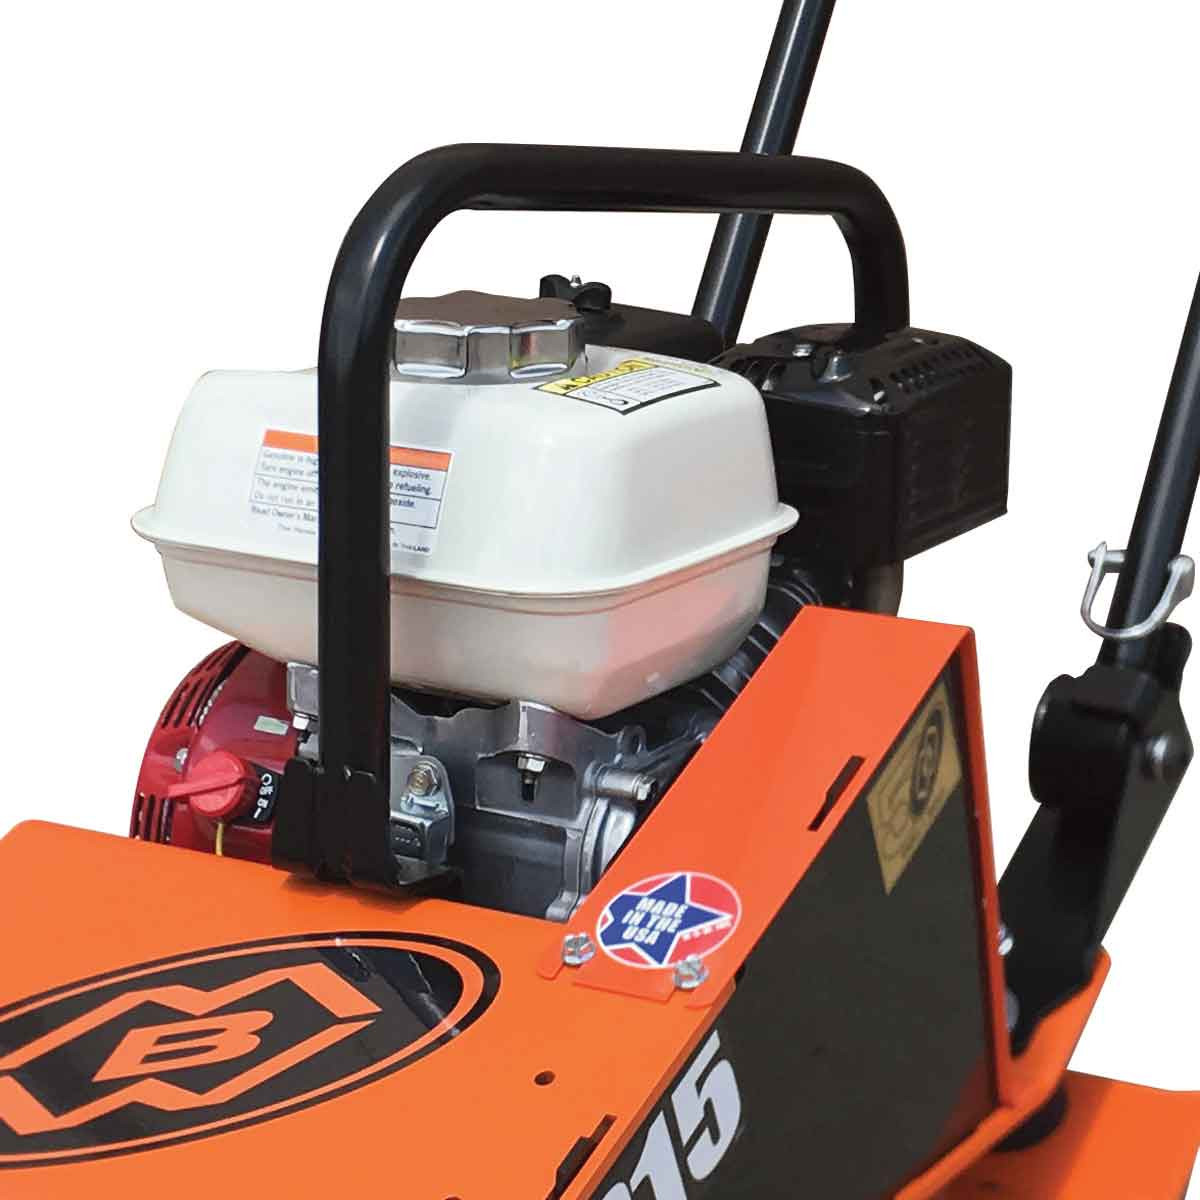 MBW GP15H Plate Compactor gas